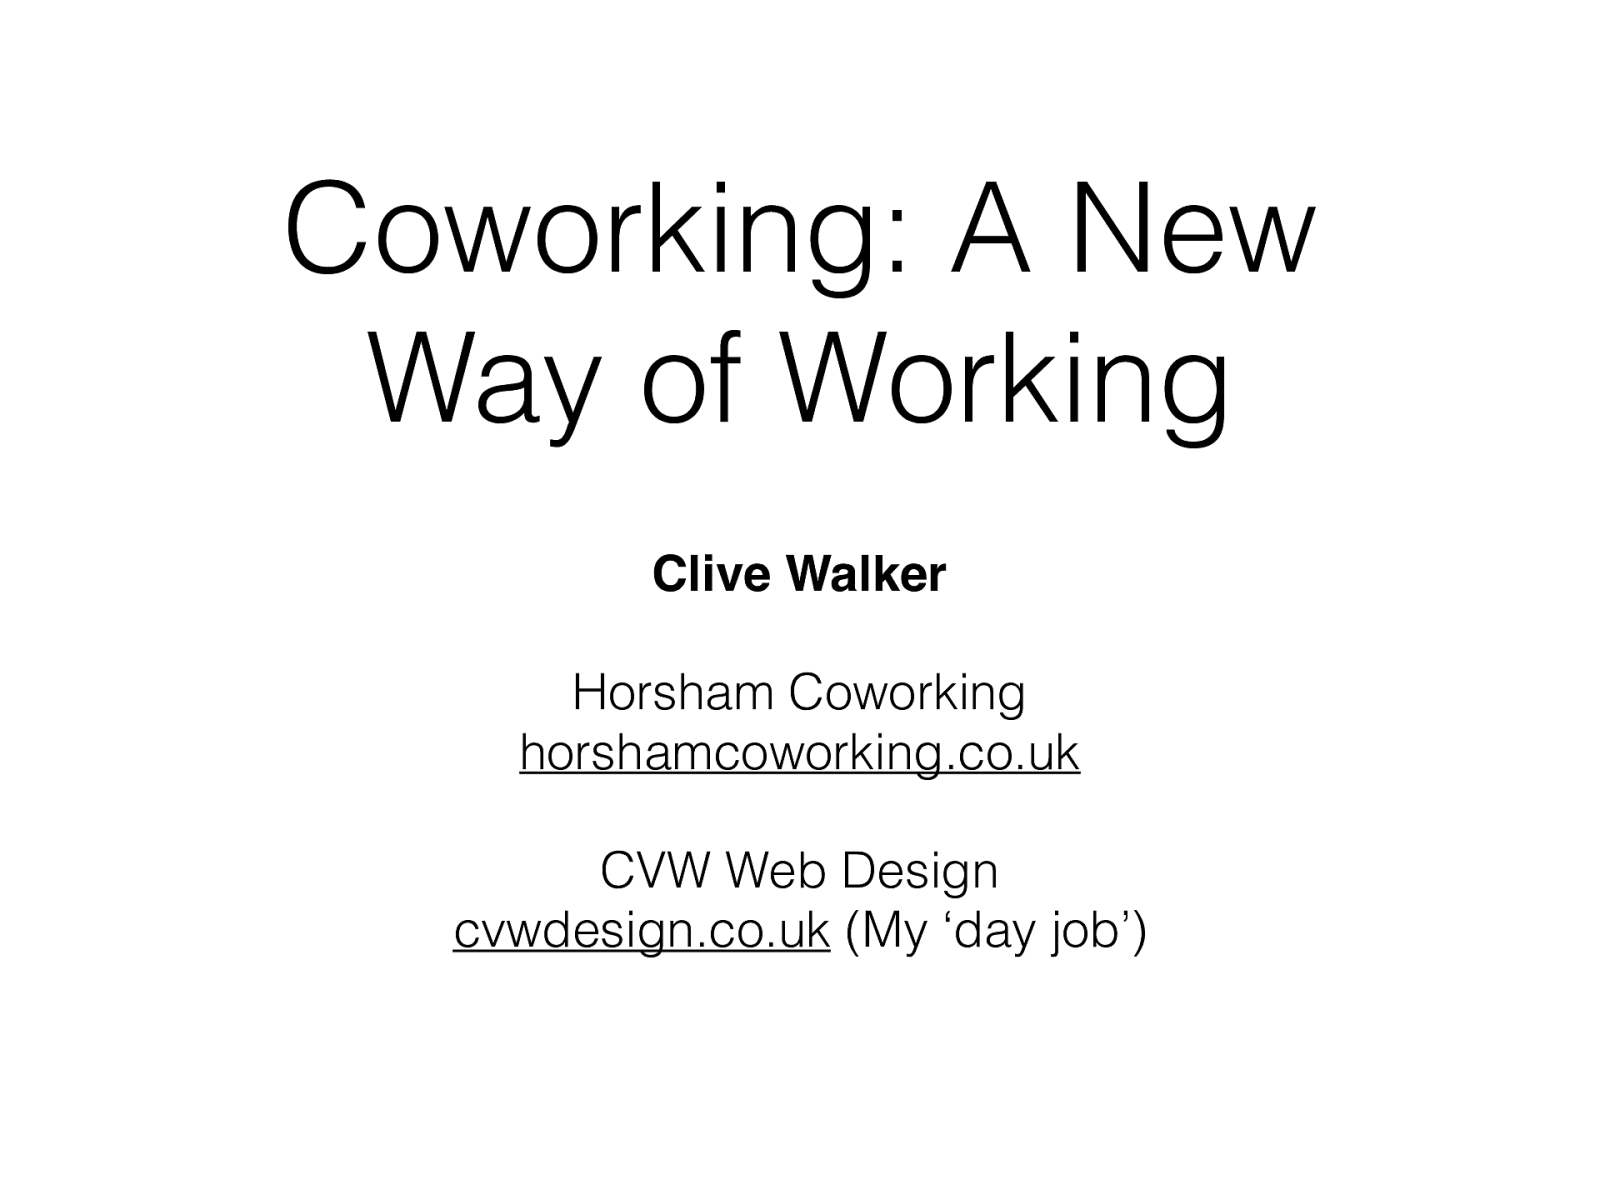 Coworking - A New Way of Working